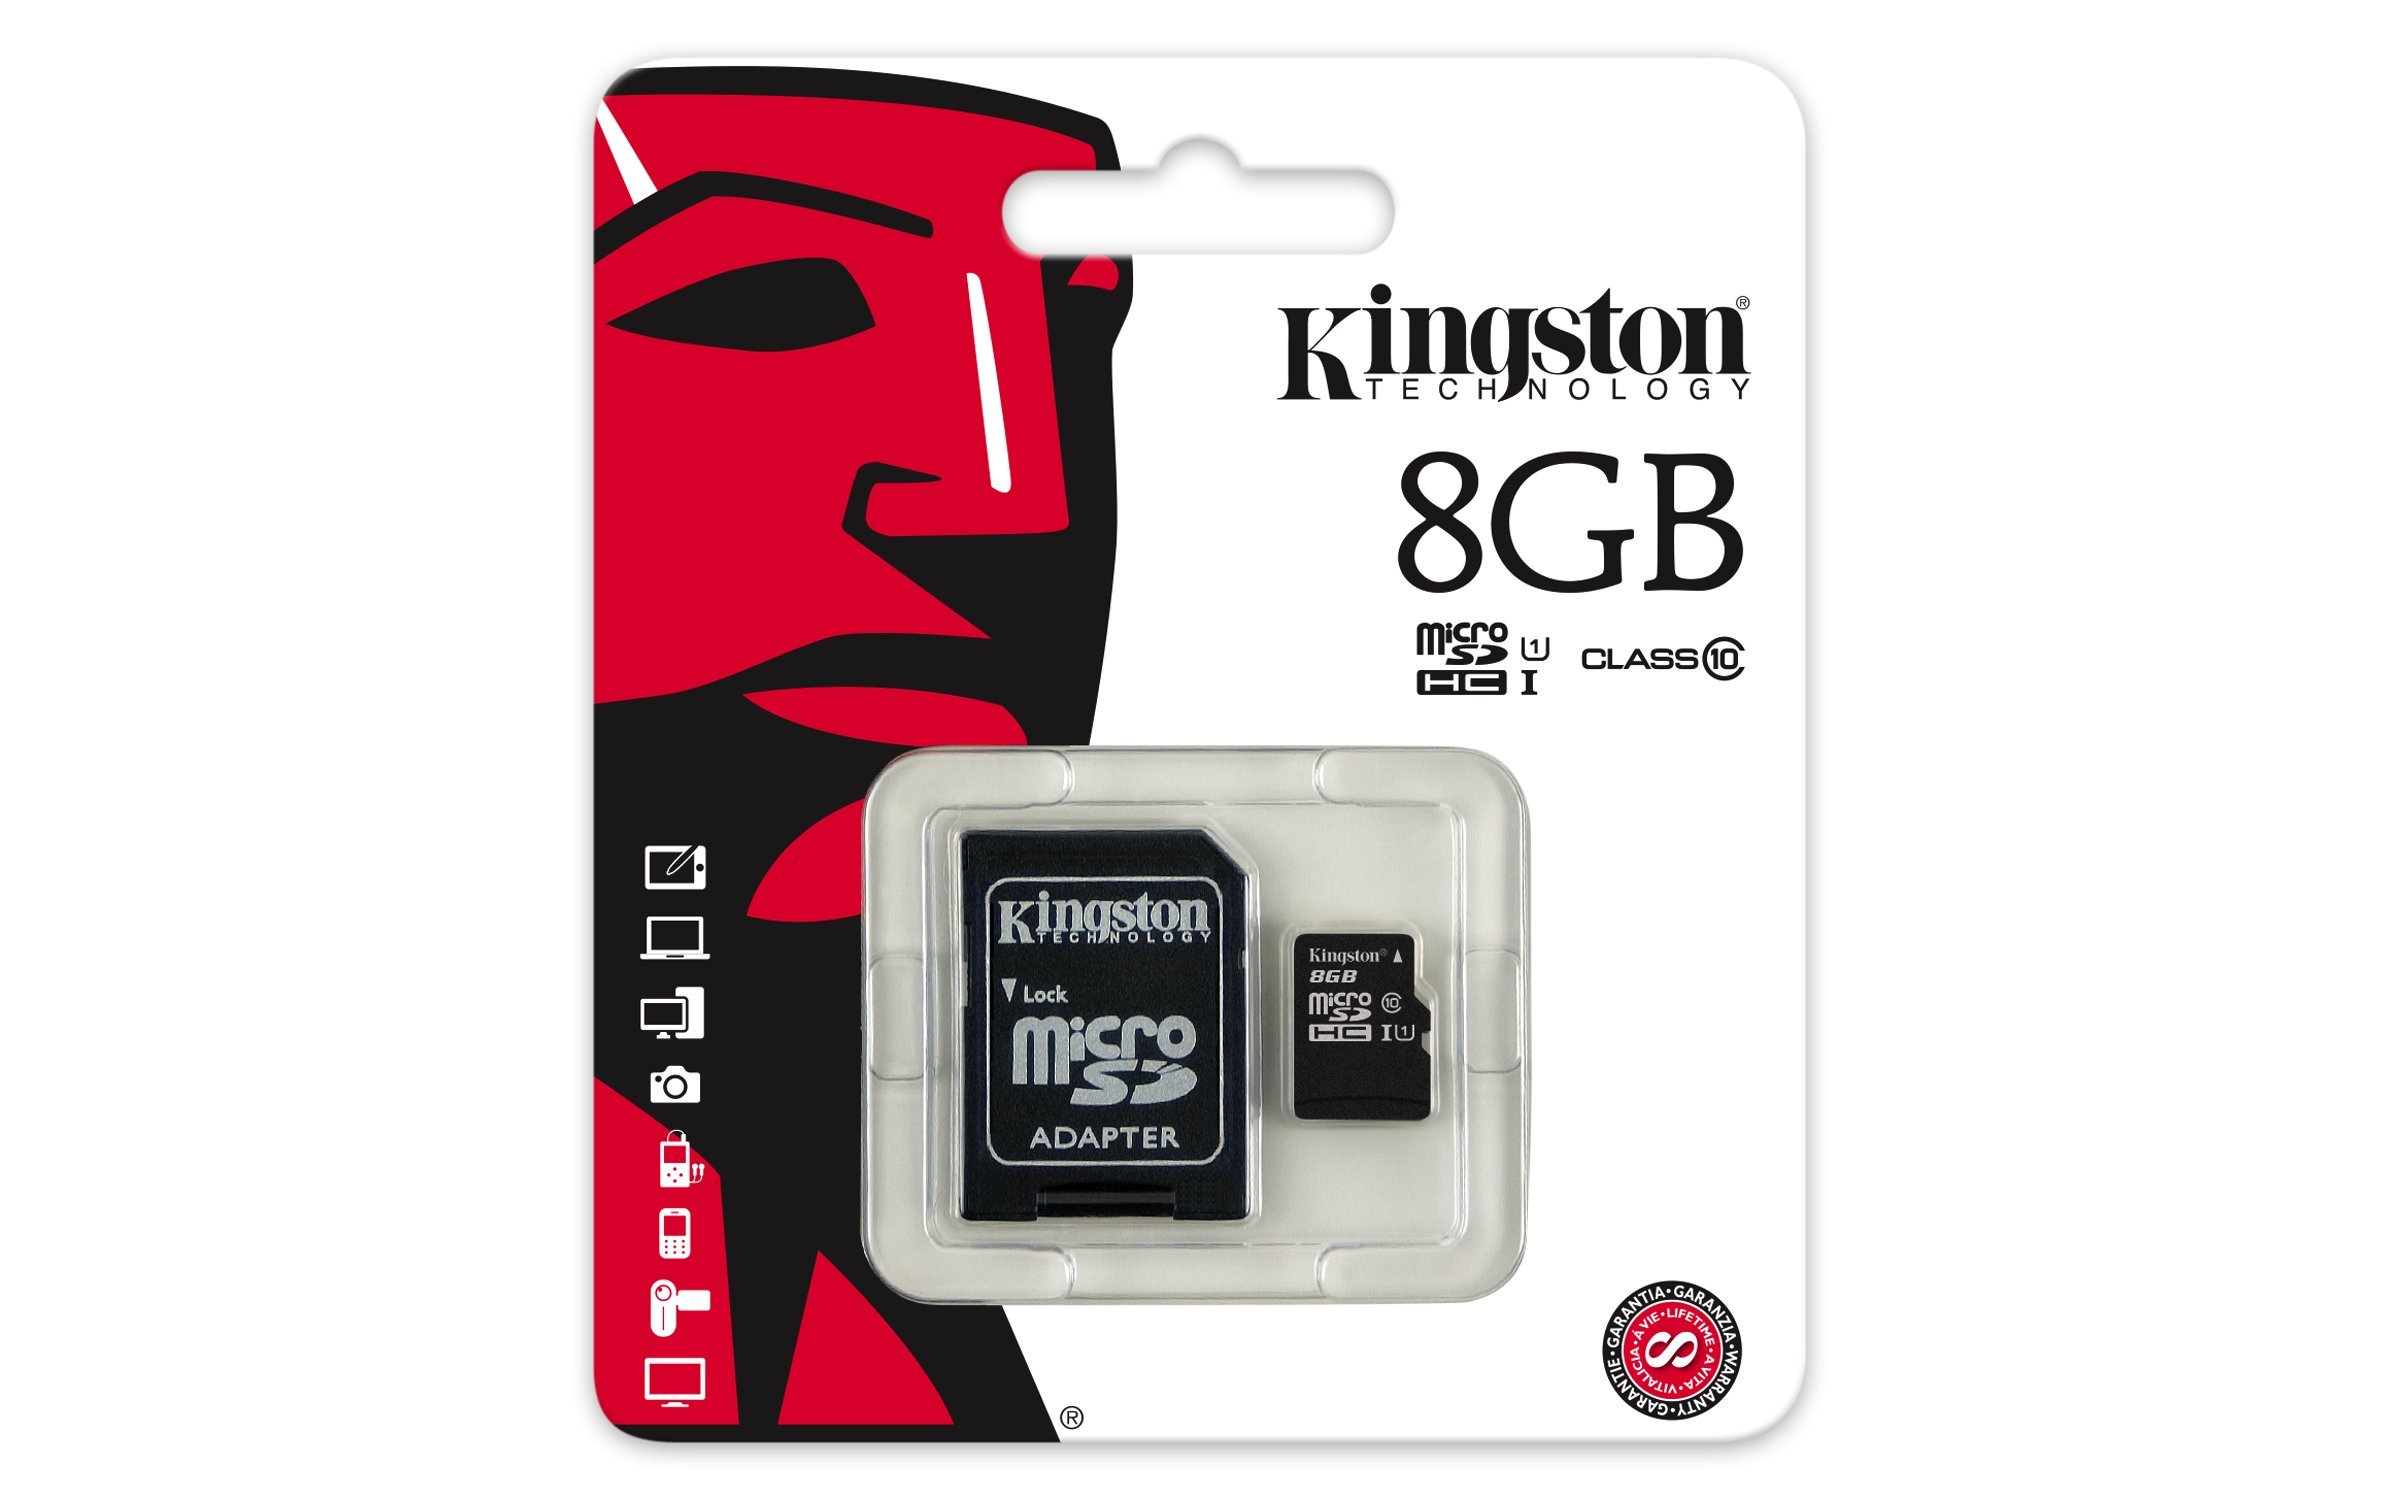 Kingston Industrial Grade 8GB ARCHOS Gamepad MicroSDHC Card Verified by SanFlash. 90MBs Works for Kingston